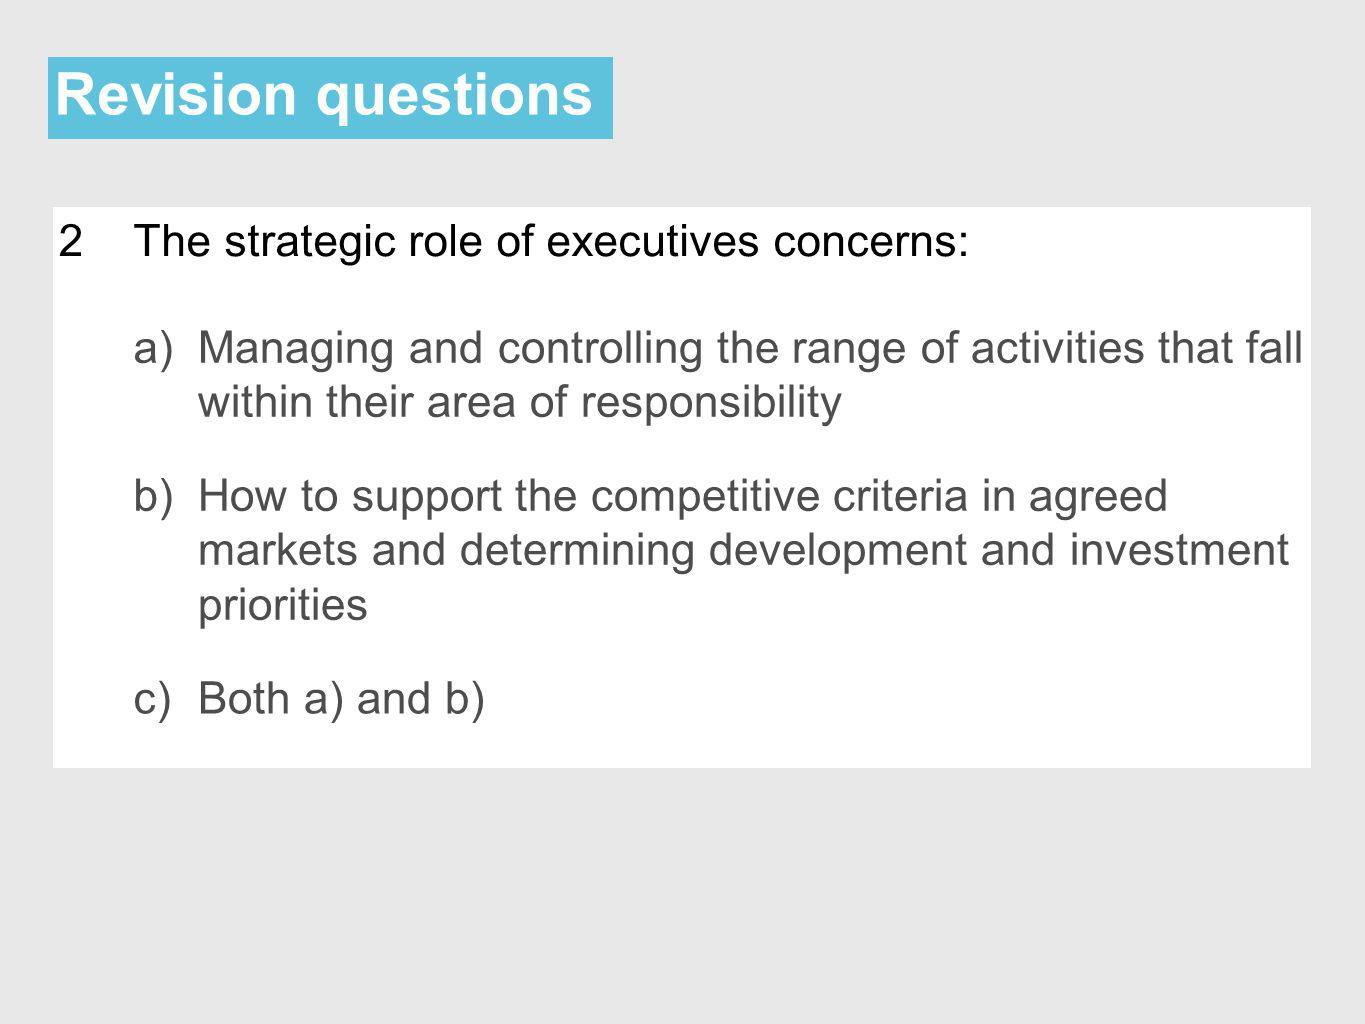 Revision questions 2The strategic role of executives concerns: a)Managing and controlling the range of activities that fall within their area of responsibility b)How to support the competitive criteria in agreed markets and determining development and investment priorities c)Both a) and b)